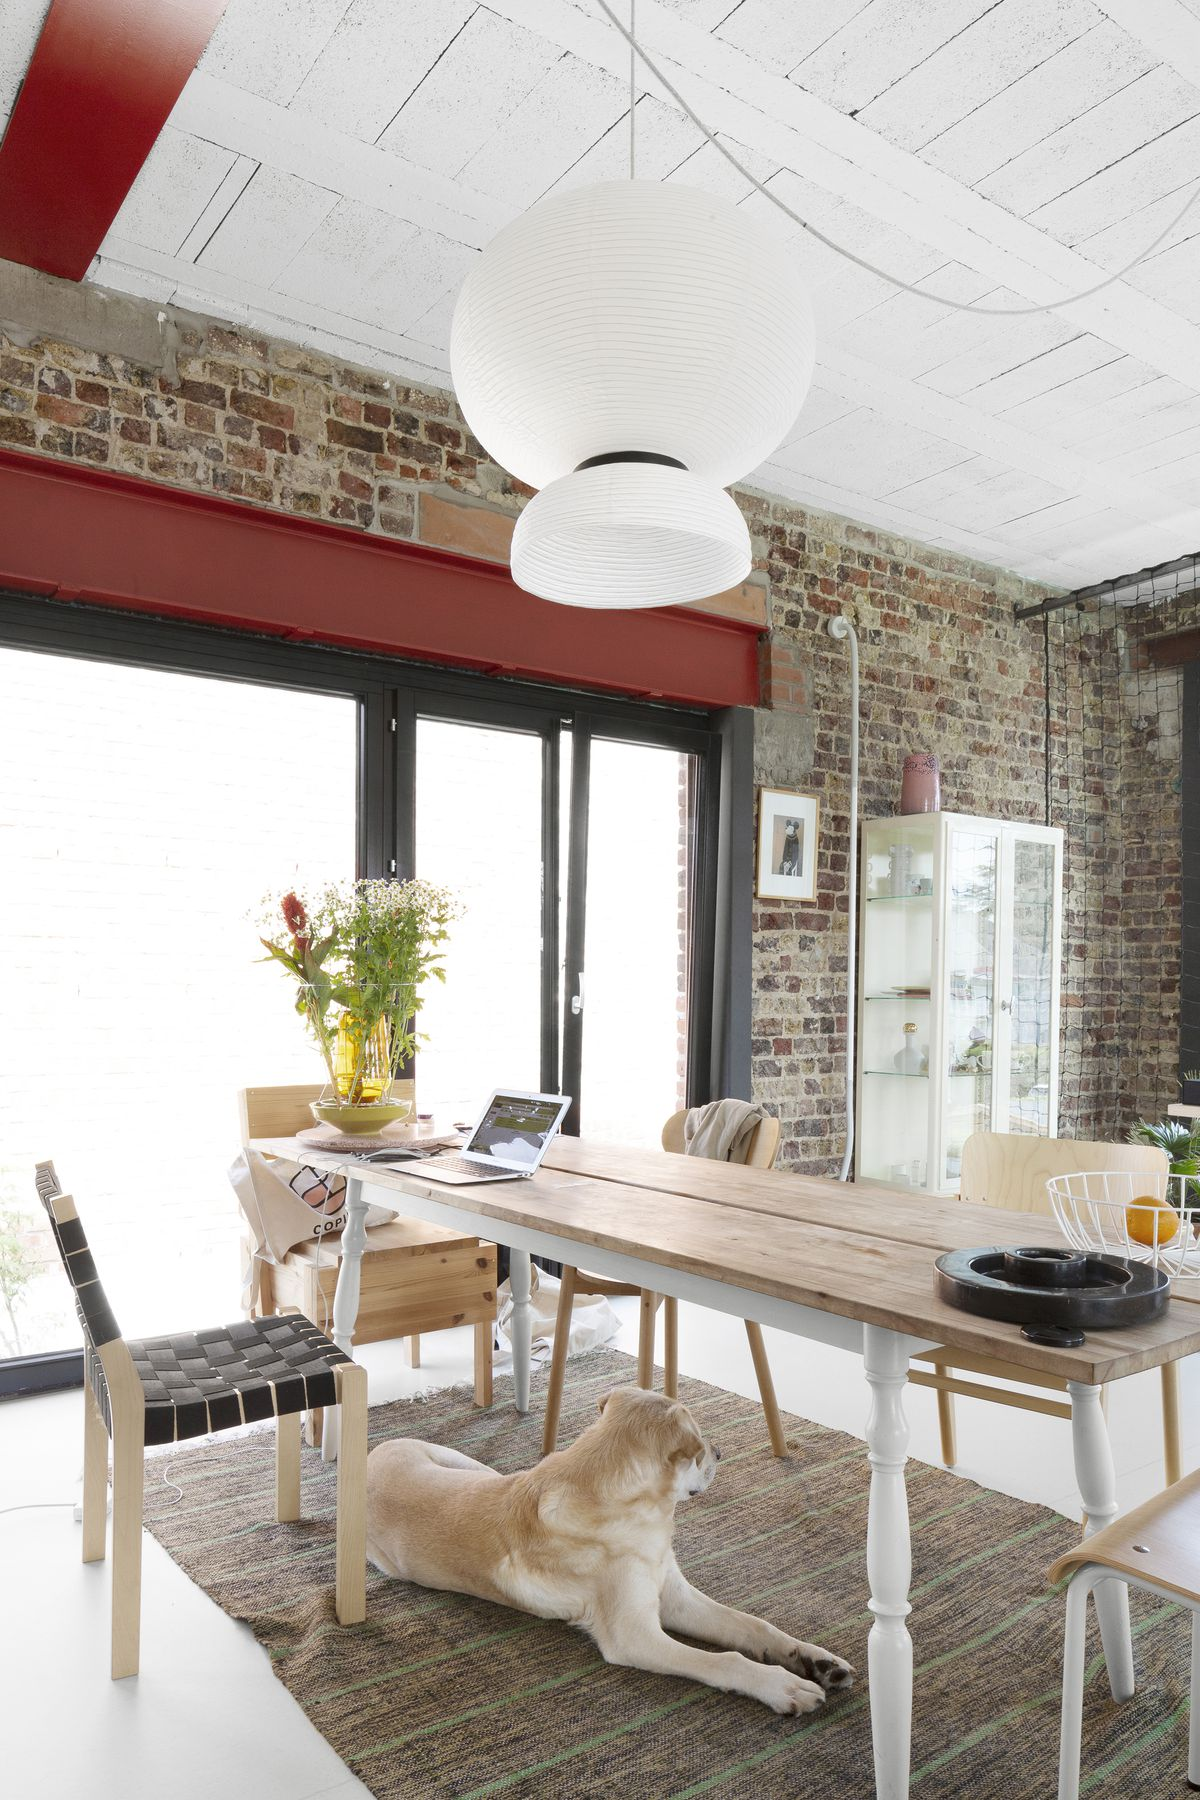 A dining area. There is a wooden table with assorted chairs. A patterned area rug is under the table. The wall is exposed brick and there is a large window. A white light fixture hangs above the table. There is a tan and white dog sitting under the table.